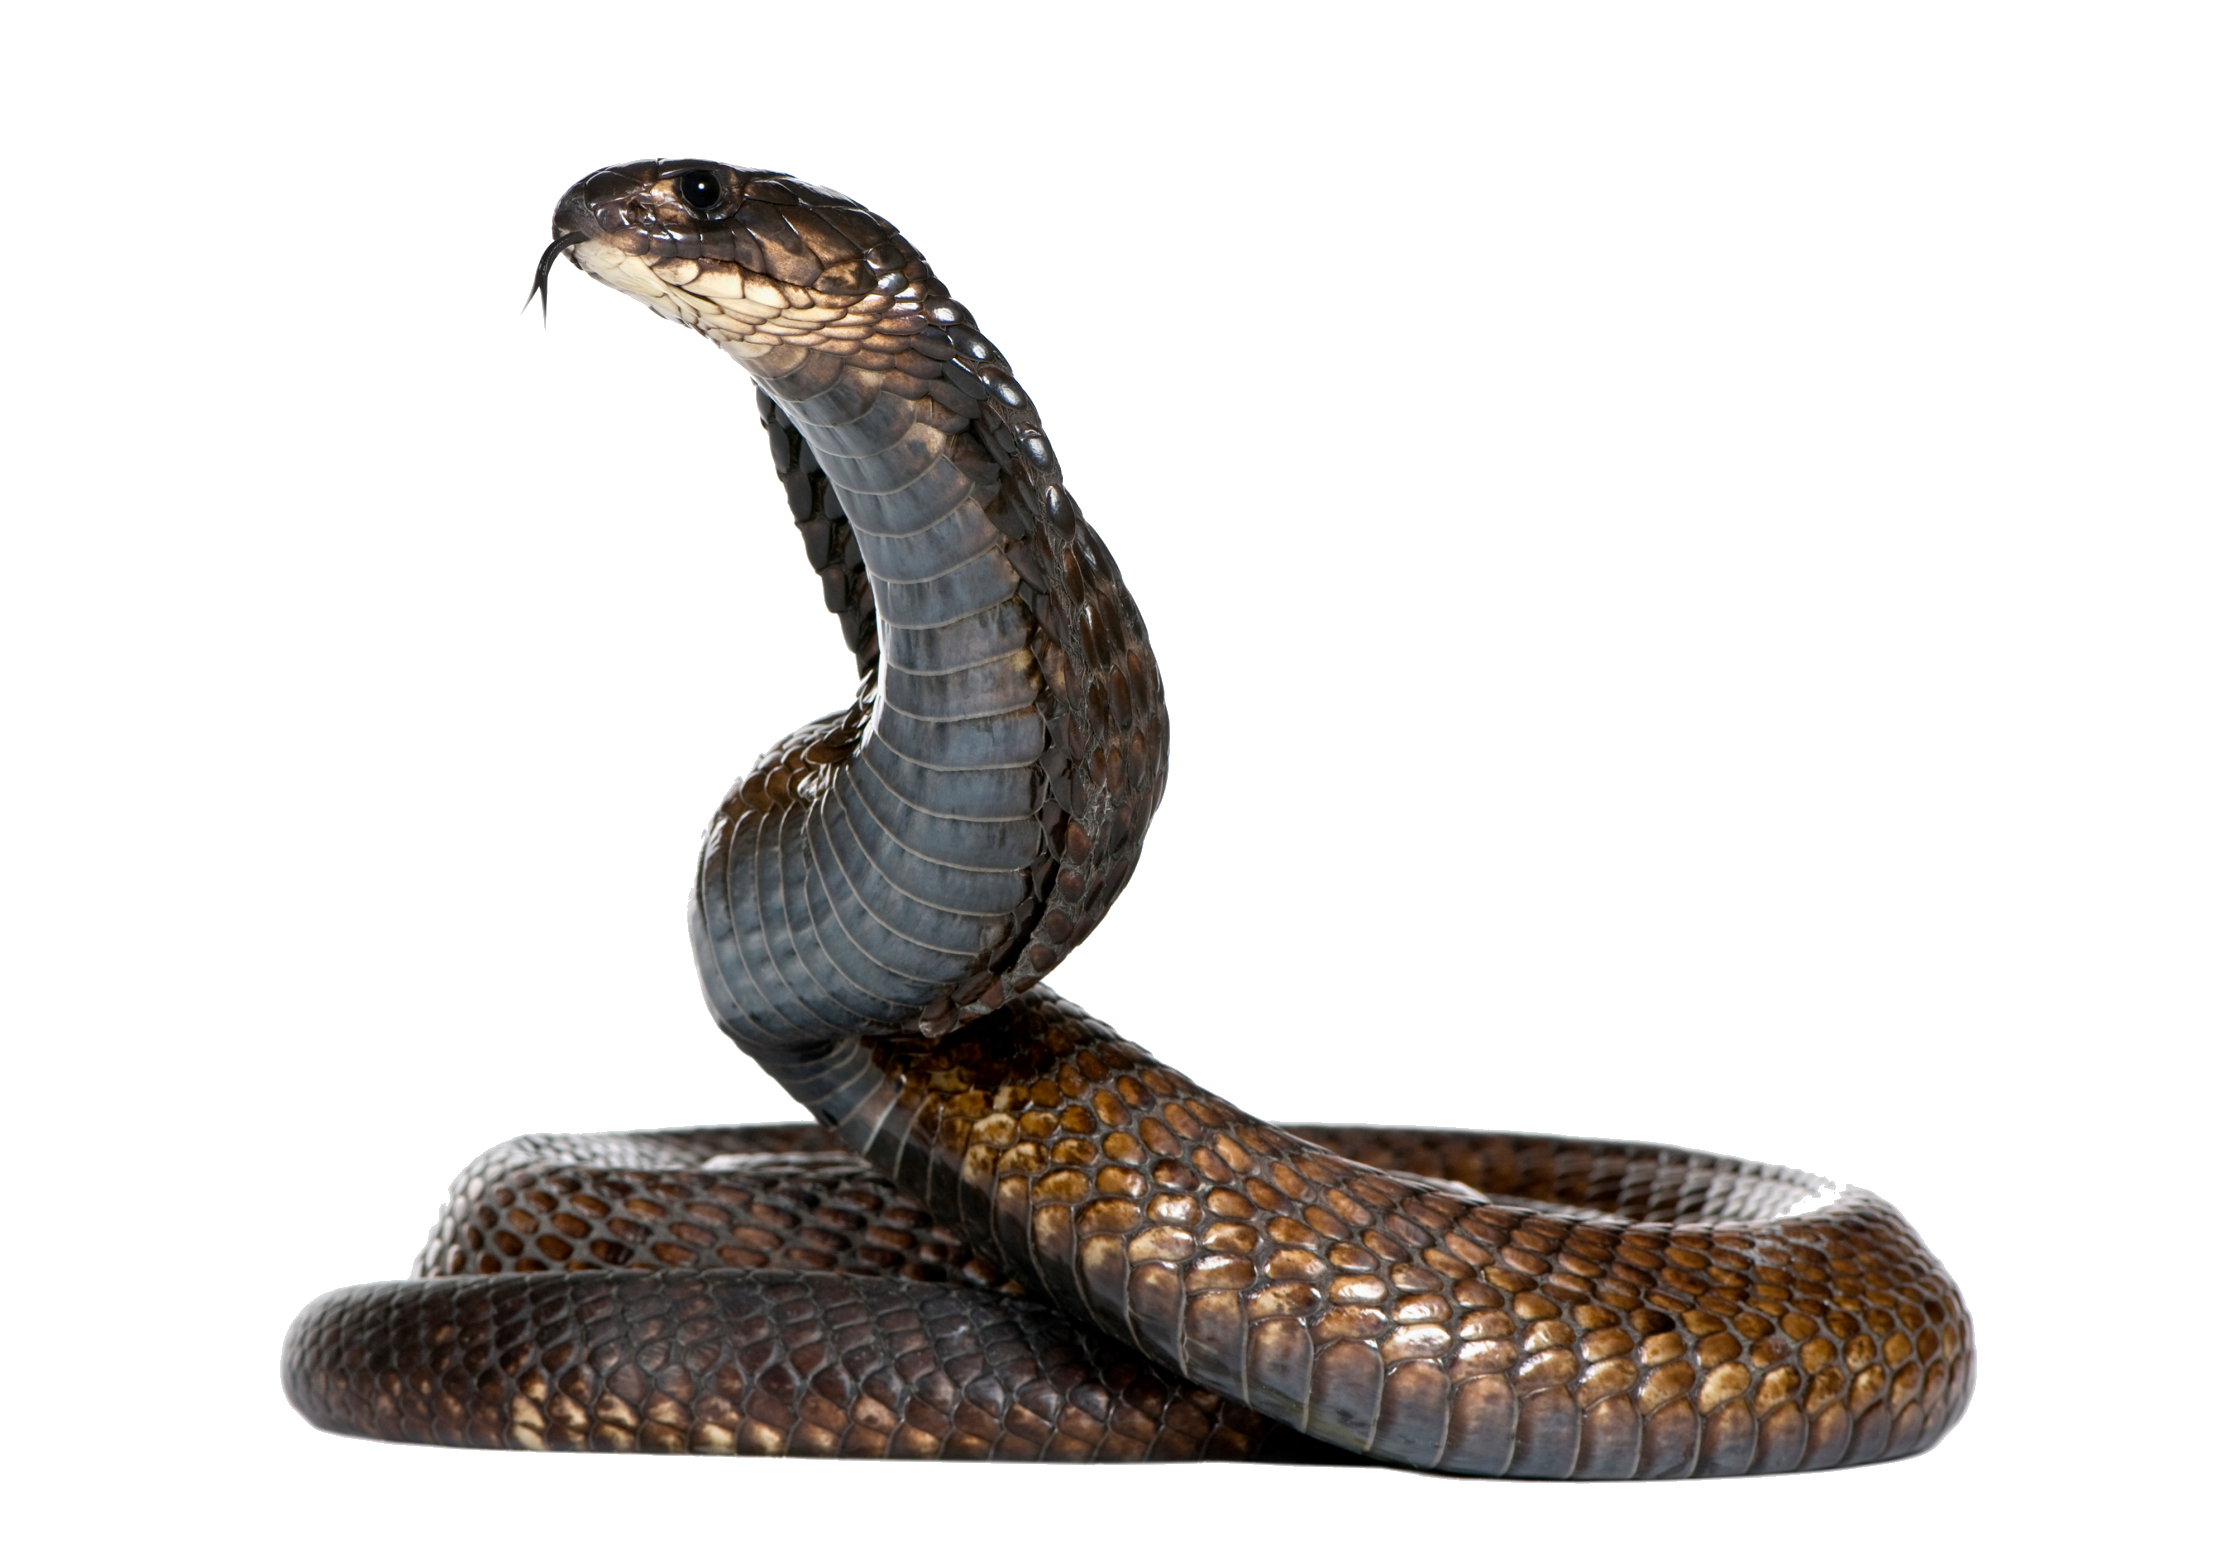 Snake clipart giant snake. Page